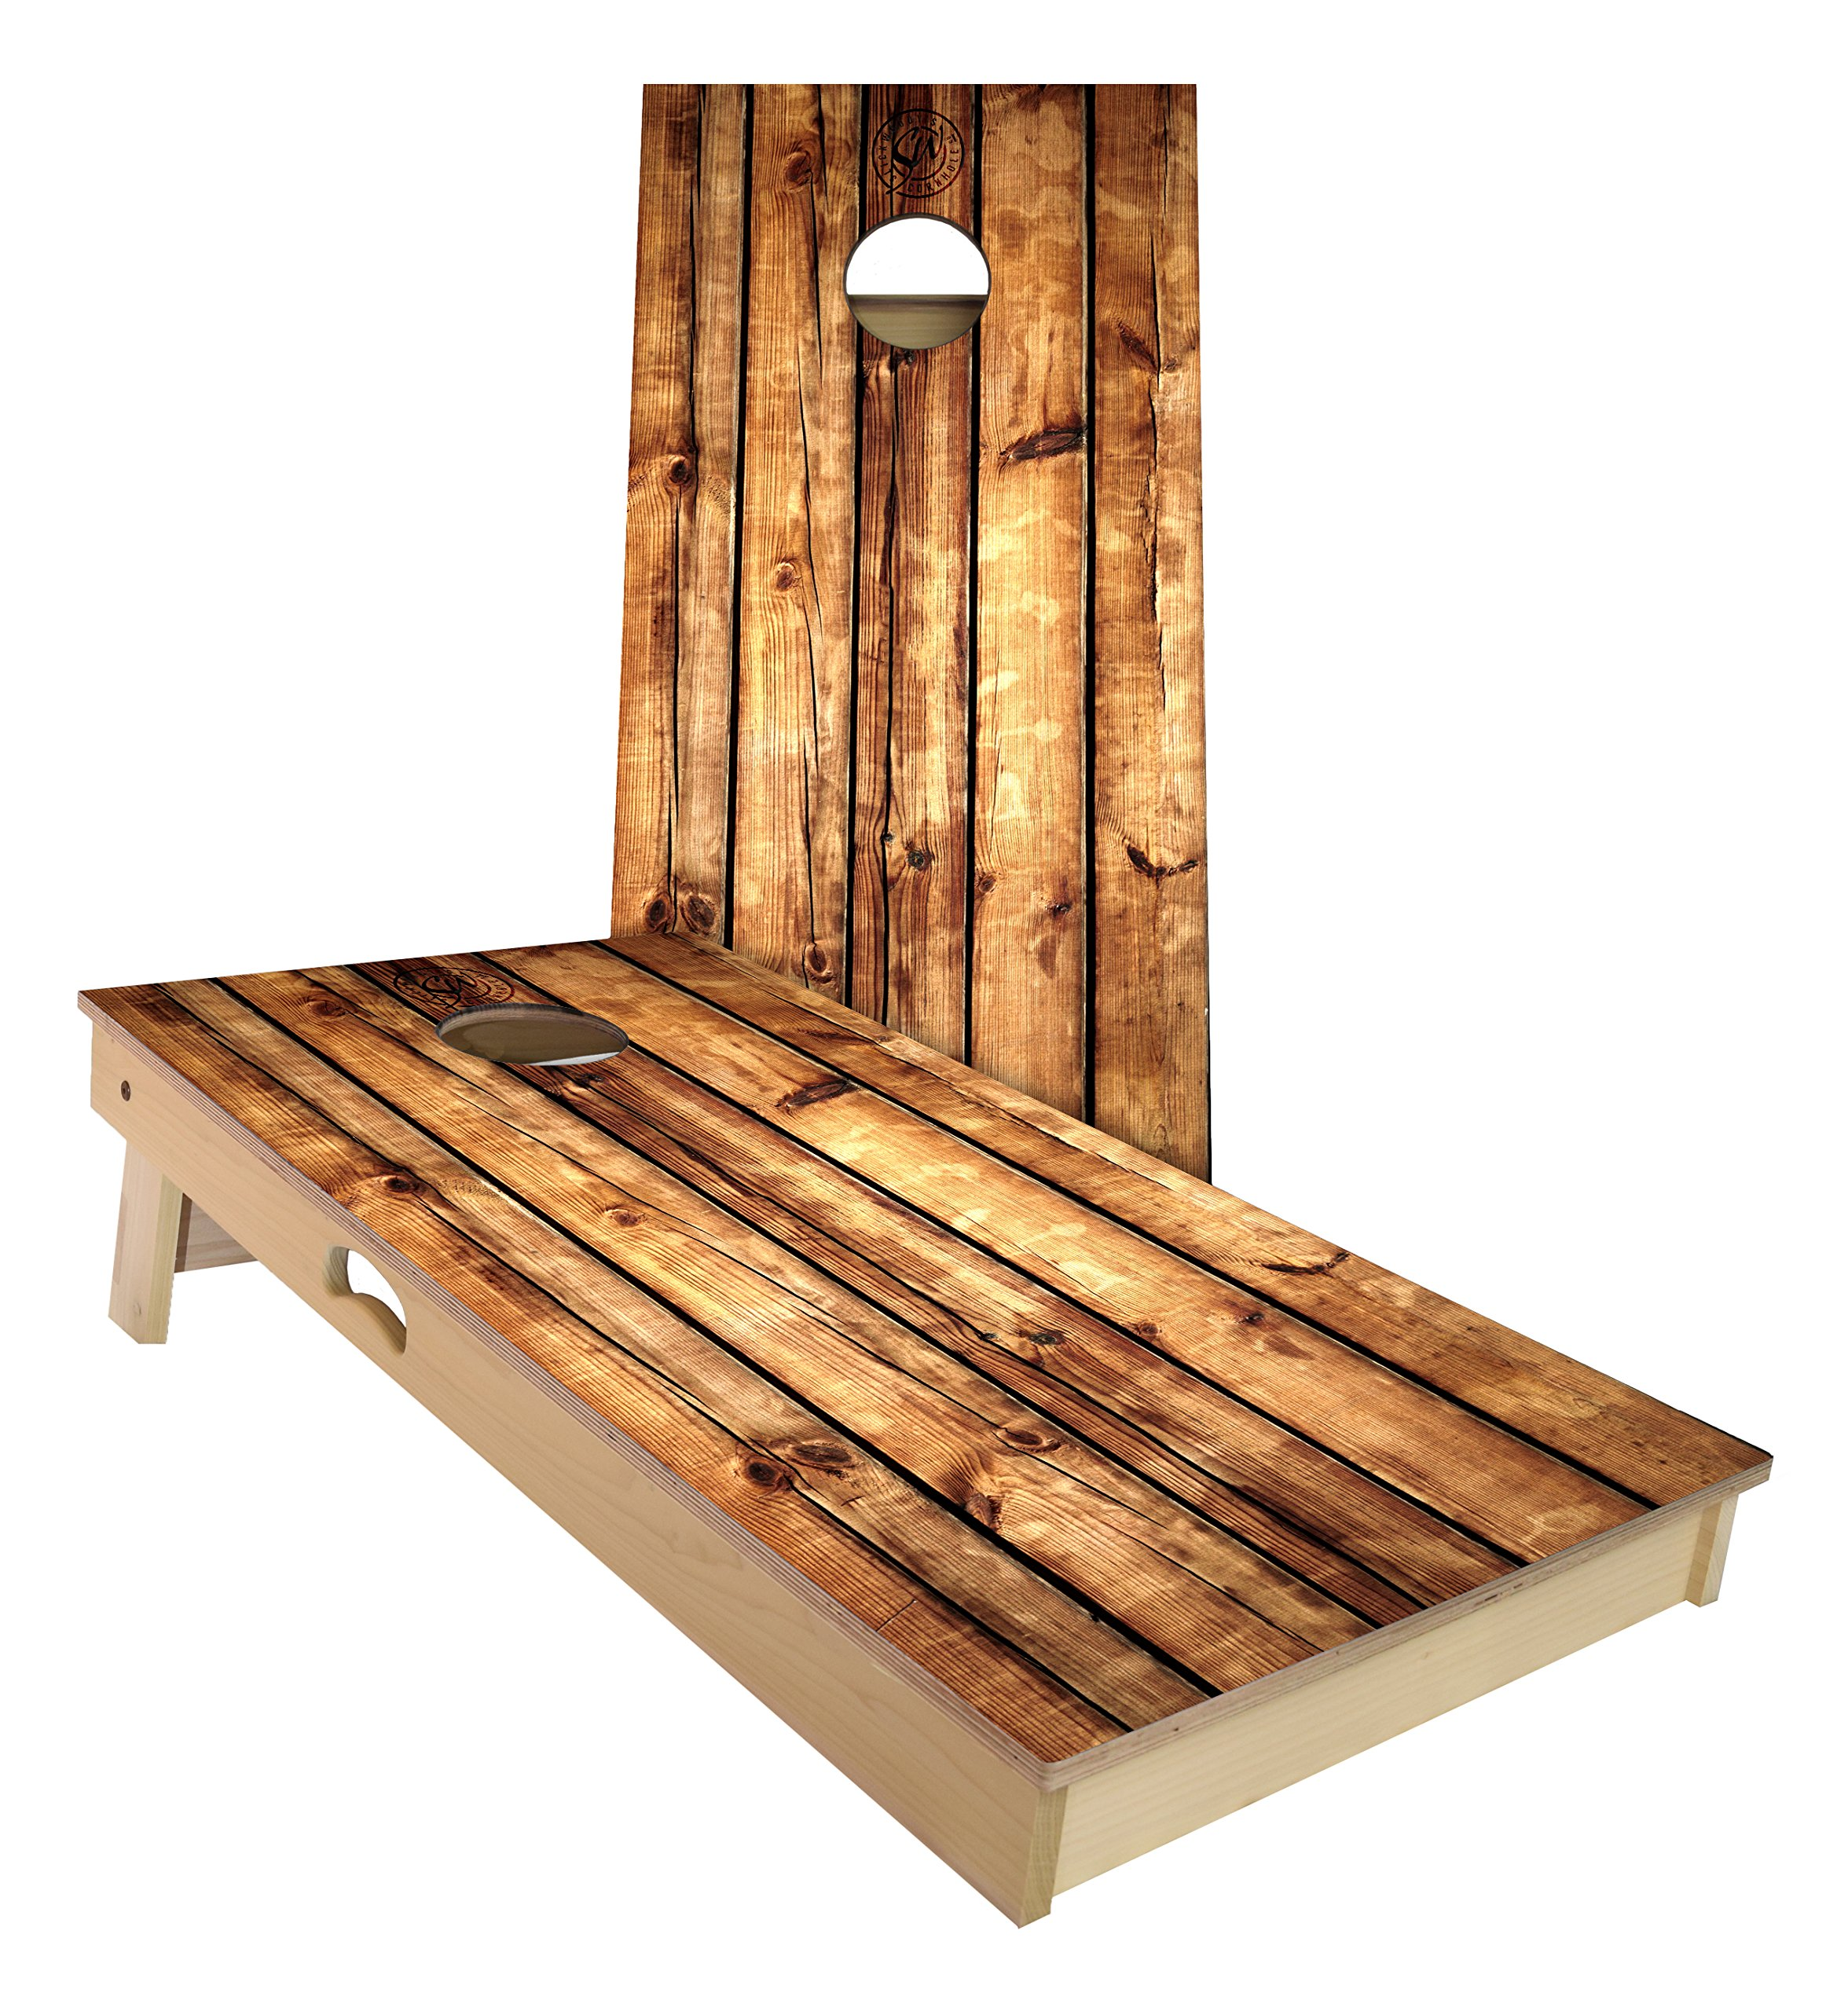 Slick Woody's Rustic Pallet Cornhole Set 4 by 2 feet by Slick Woody's Cornhole Co.